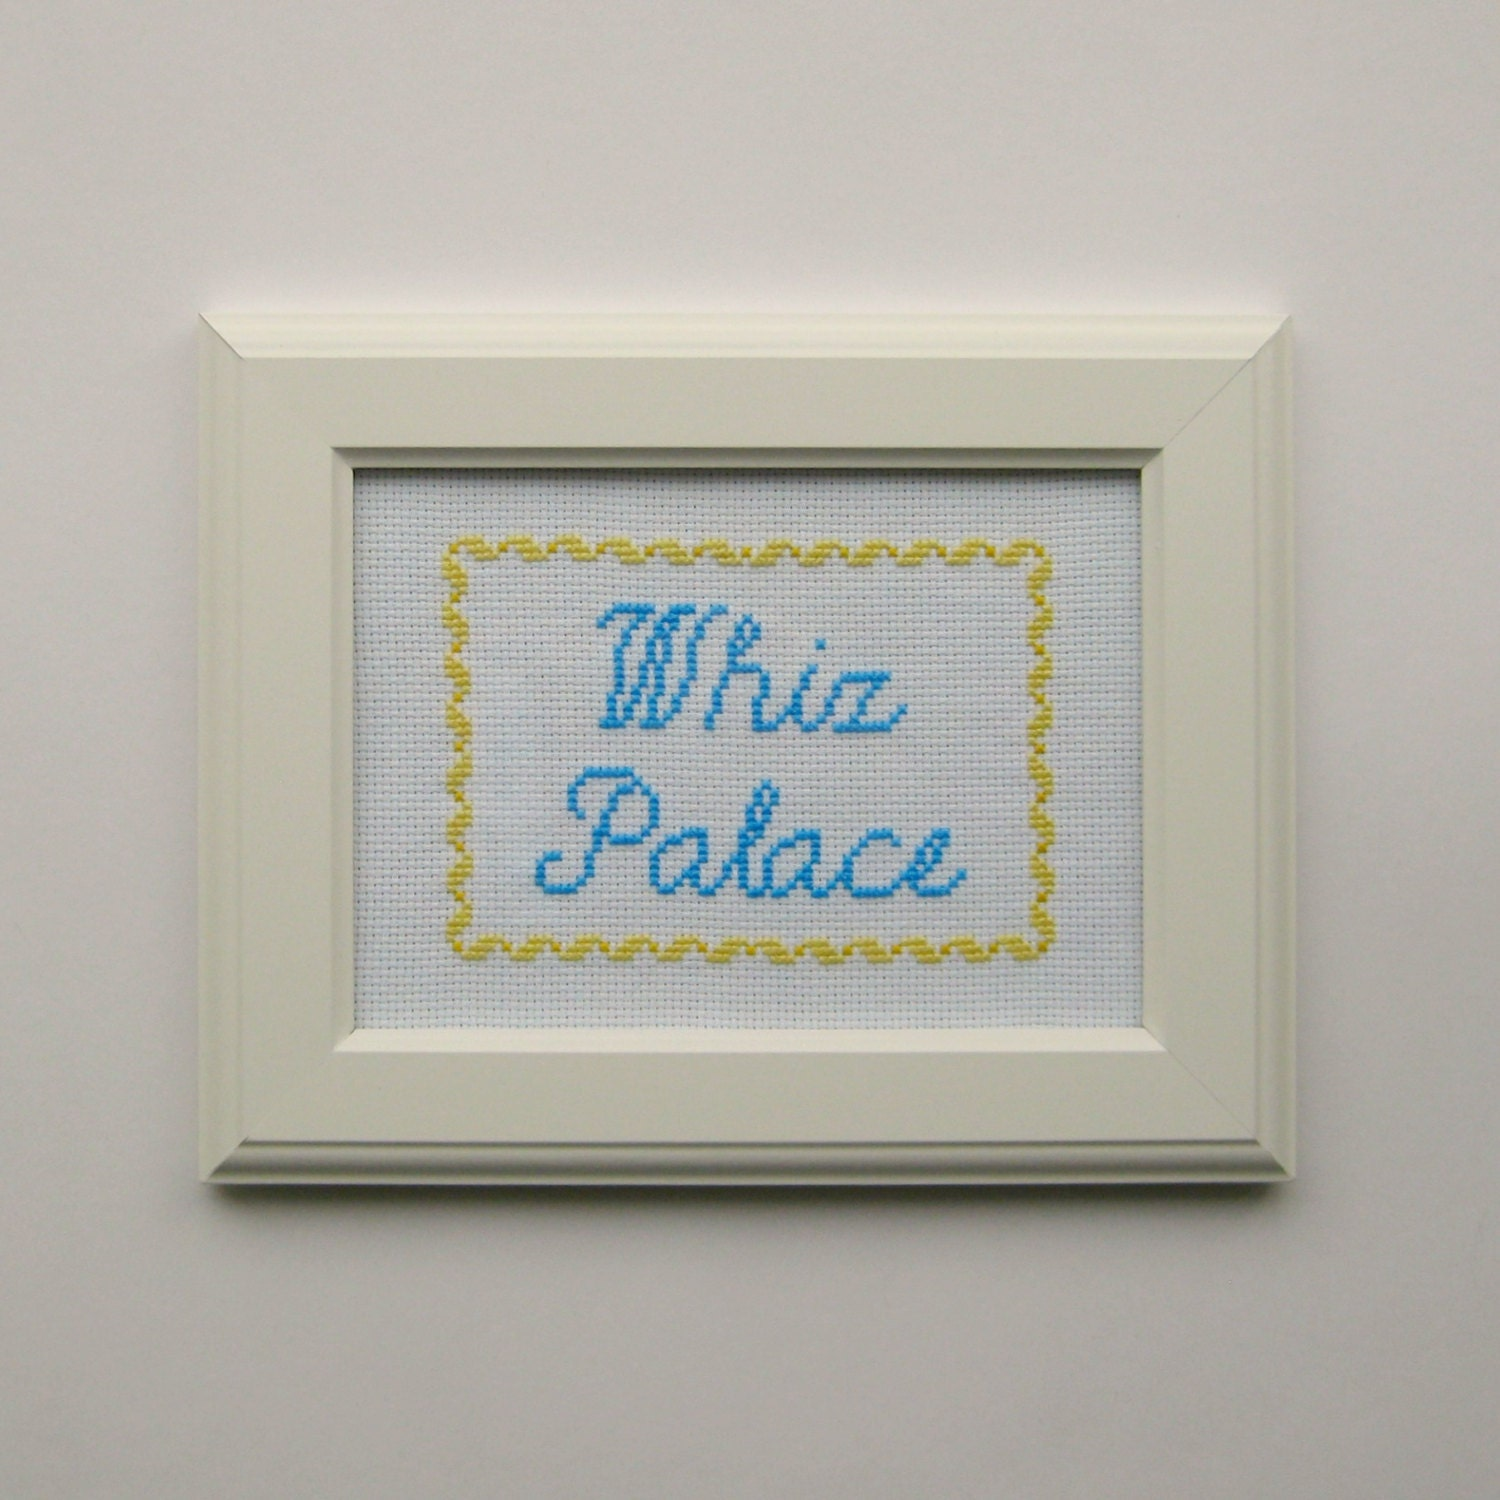 Whiz palace cross stitch pattern washroom bathroom sign zoom jeuxipadfo Gallery